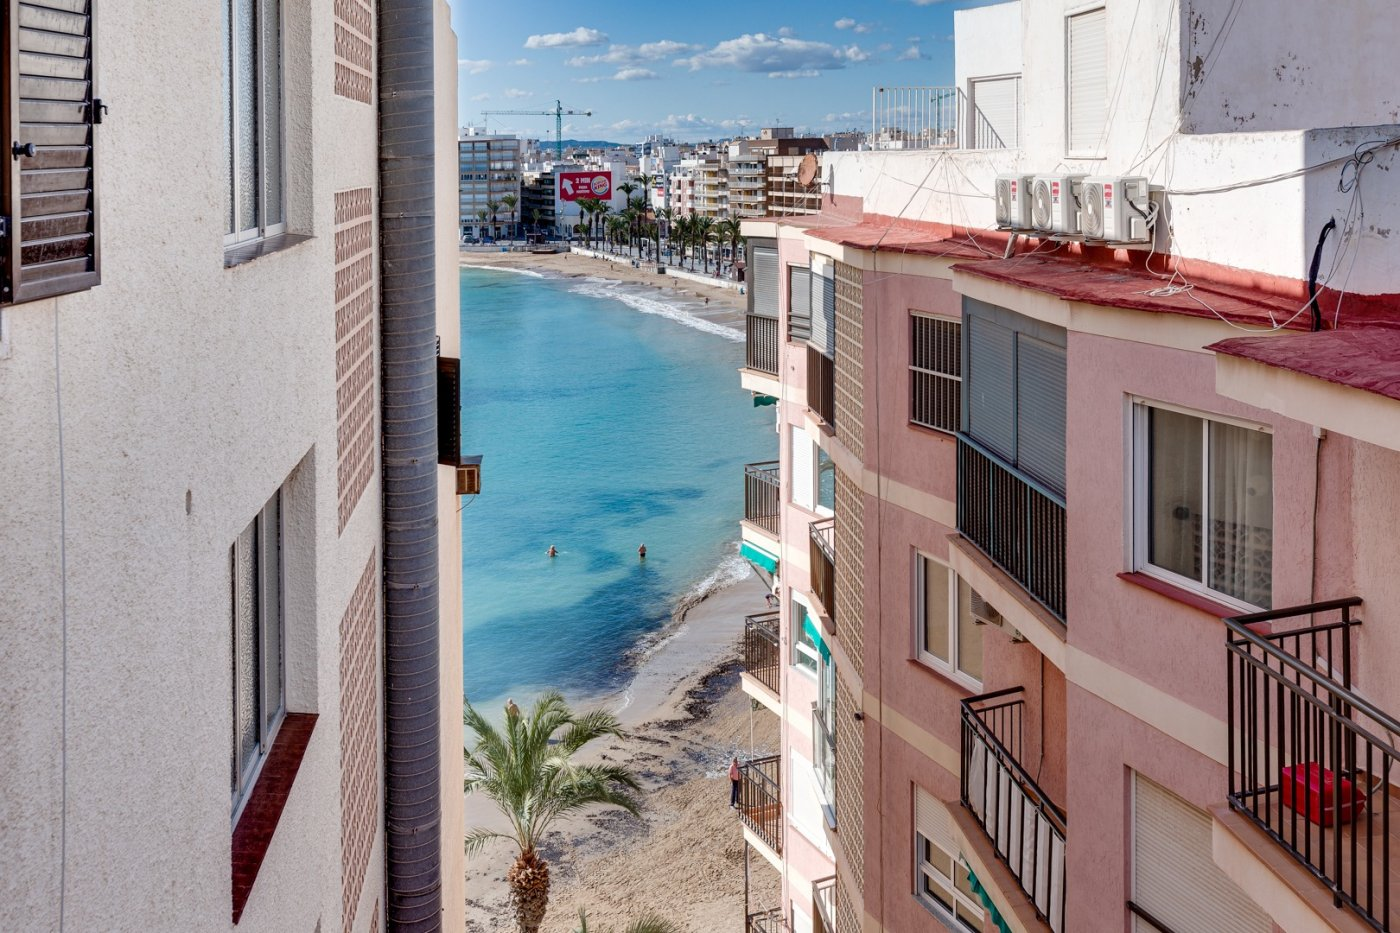 2 Bedrooms Apartment For Sale Near Playa del Cura